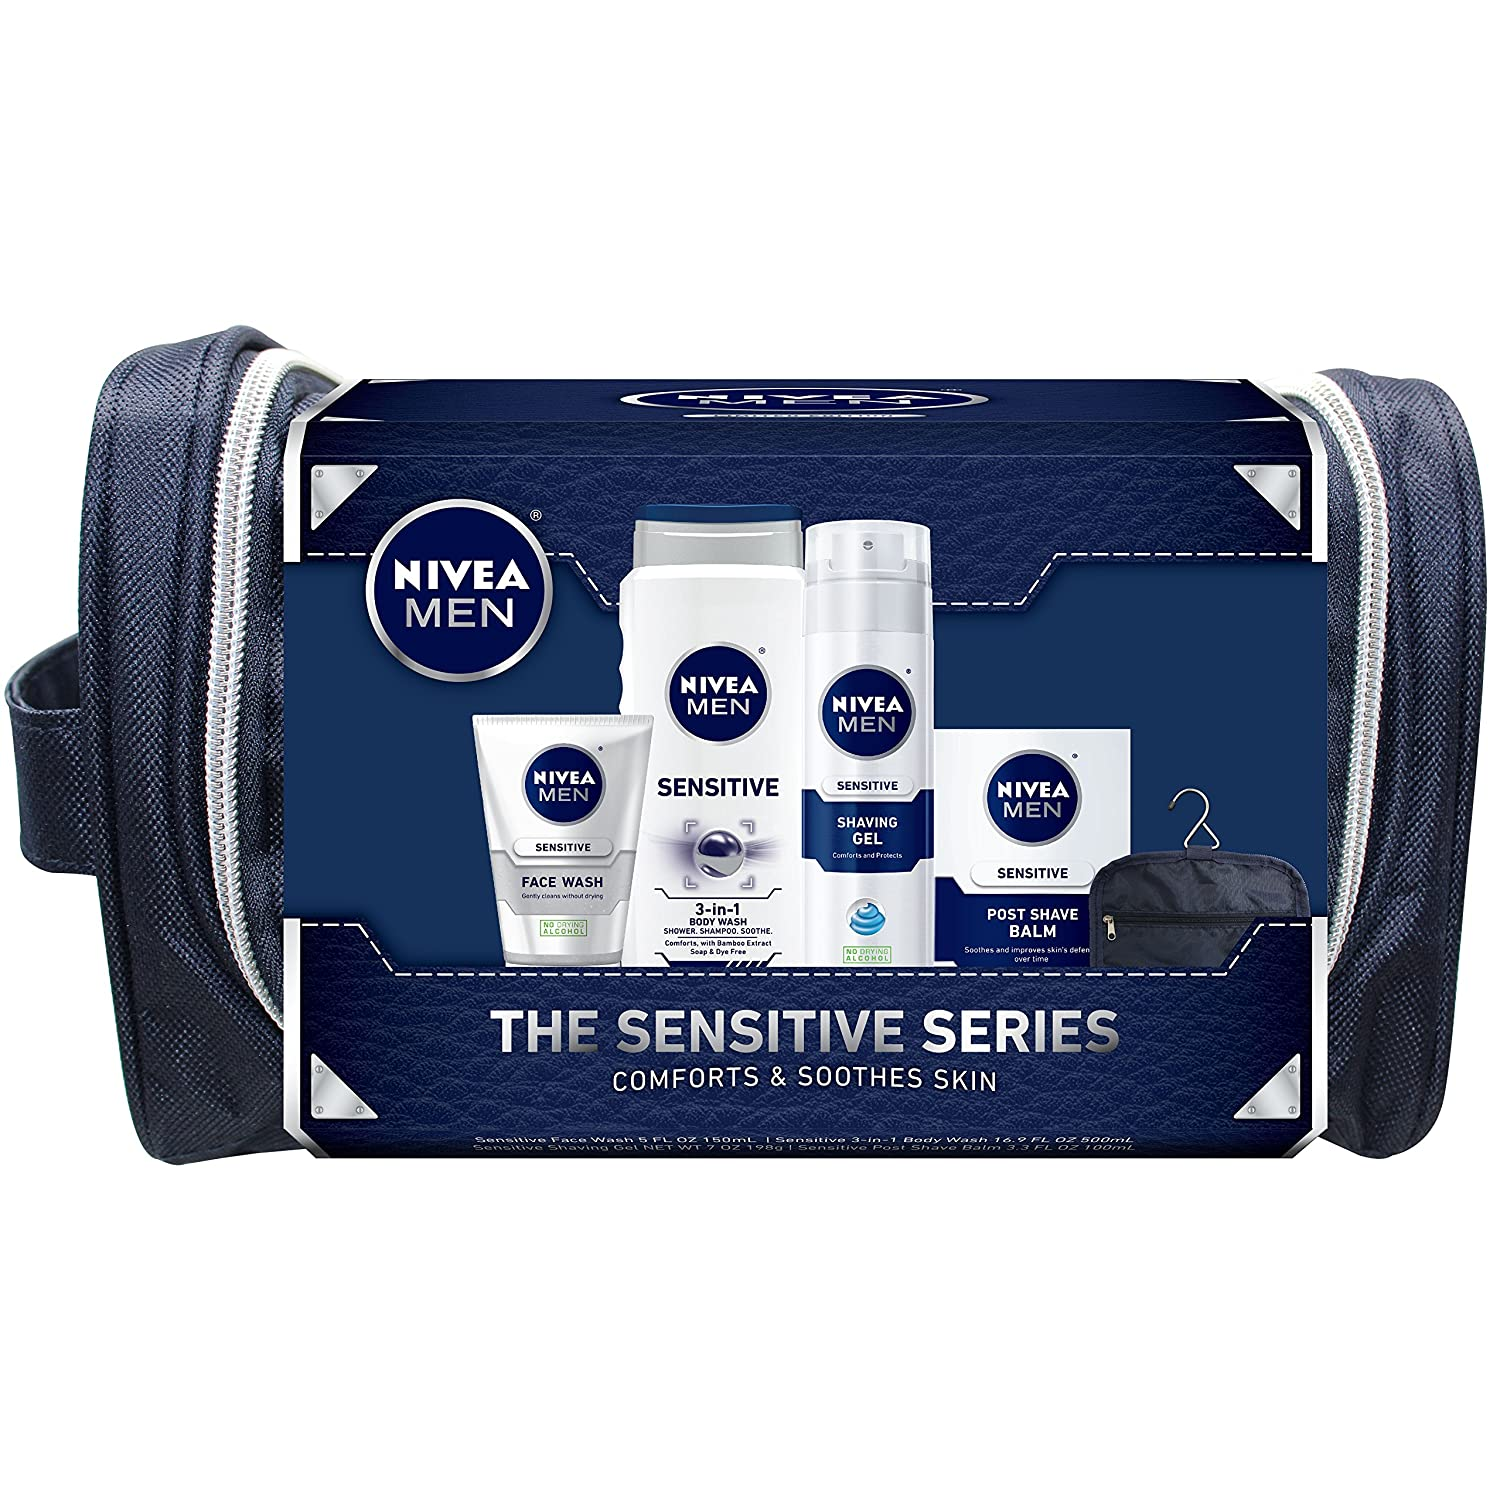 NIVEA Men 4 Piece Sensitive Collection Gift Set